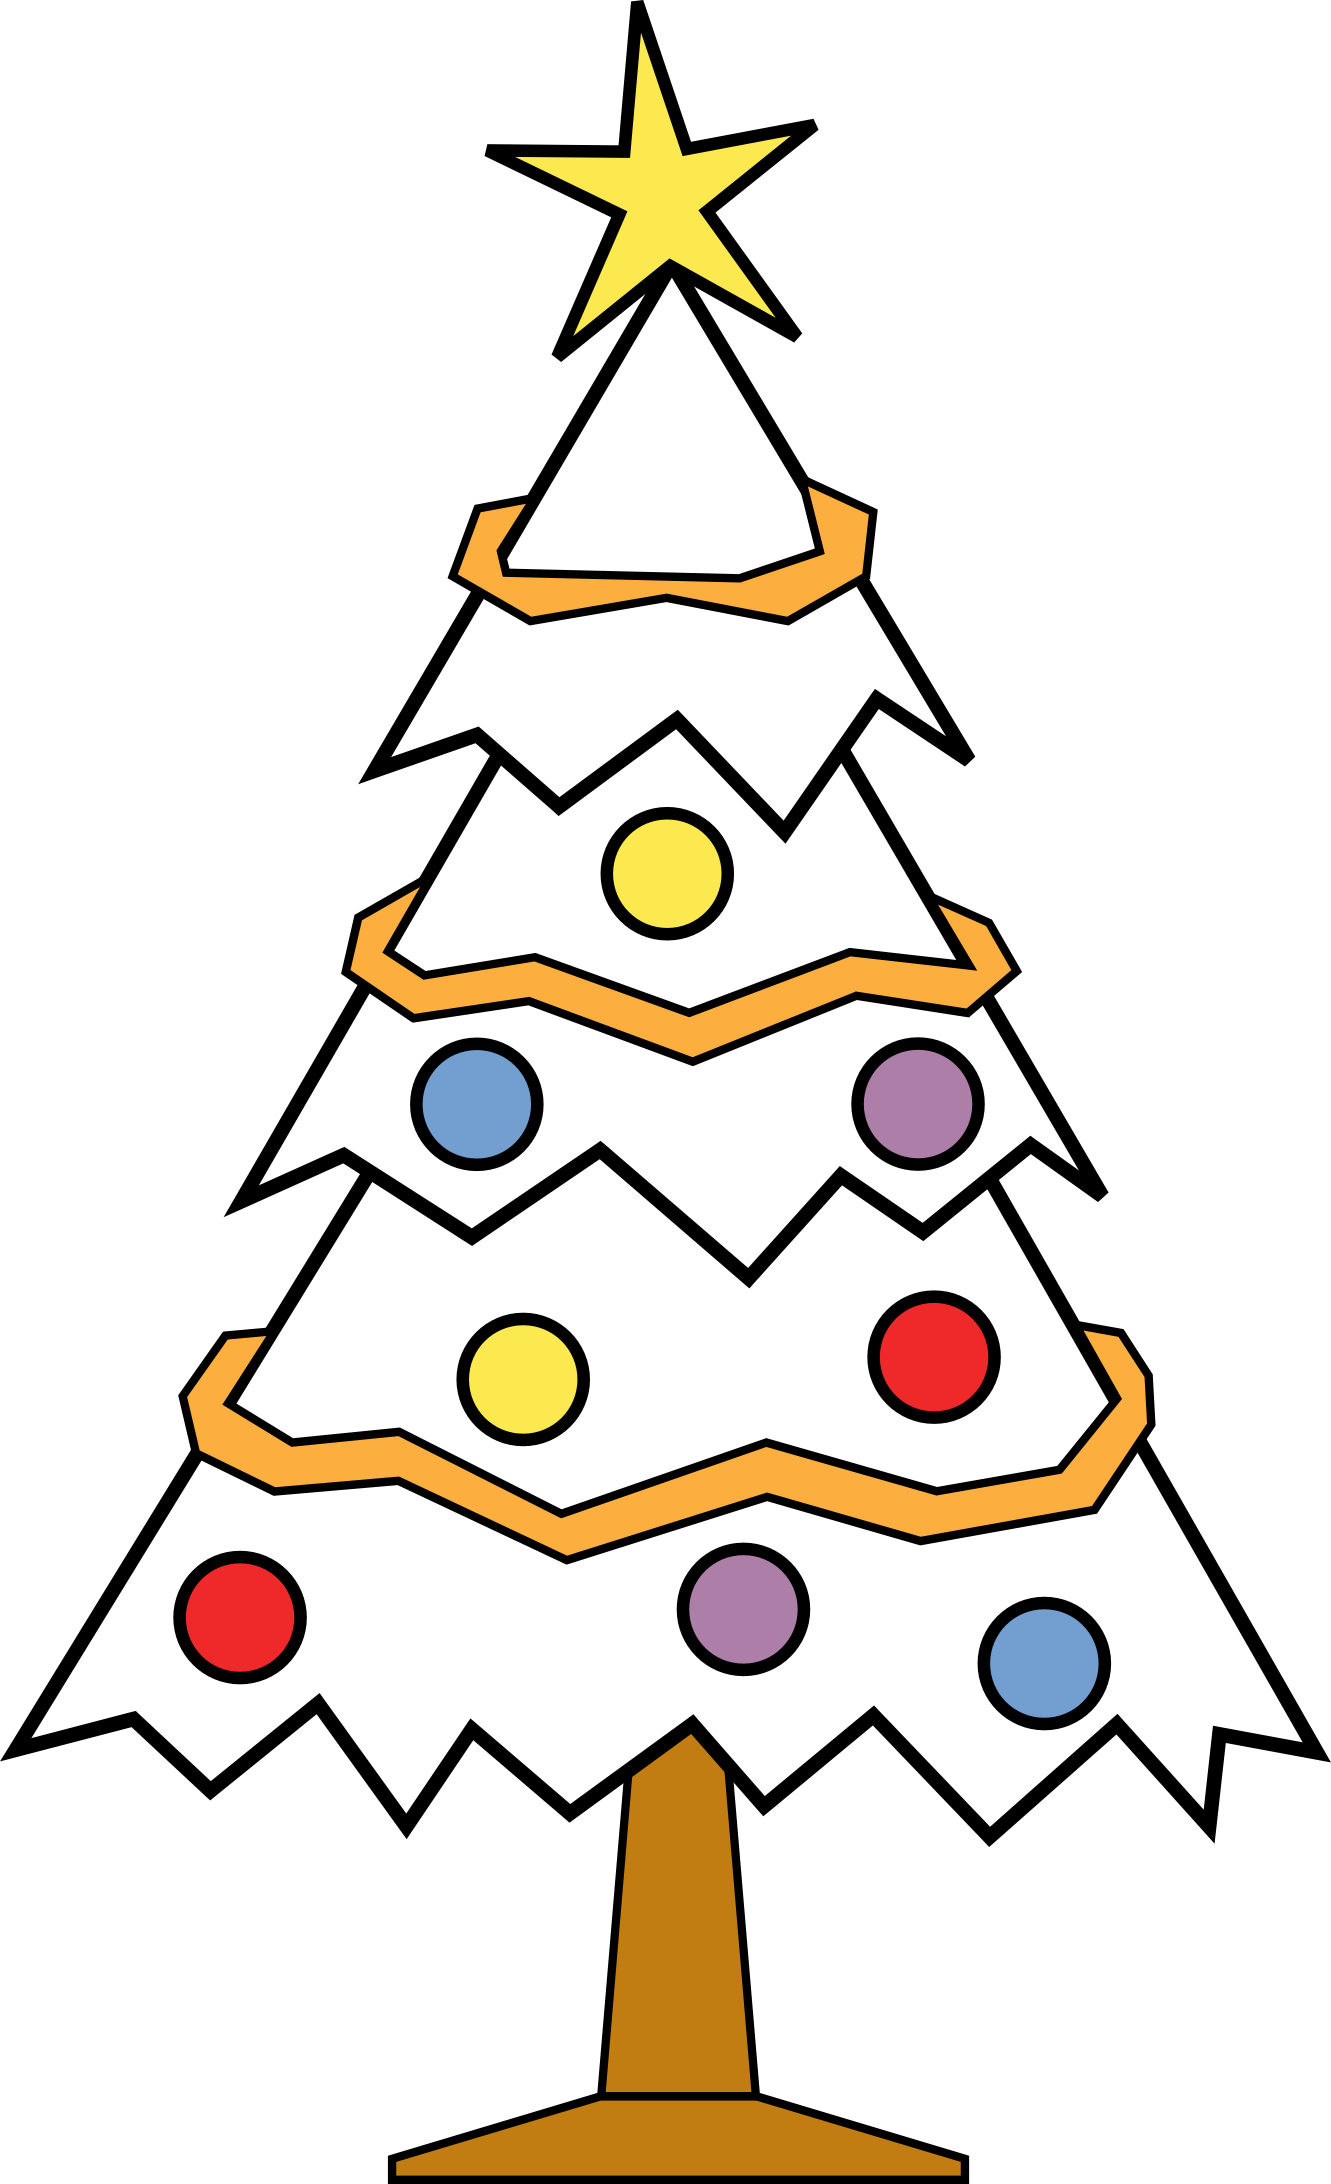 Christmas ornament  black and white tree ornament clipart black and white clipartfest